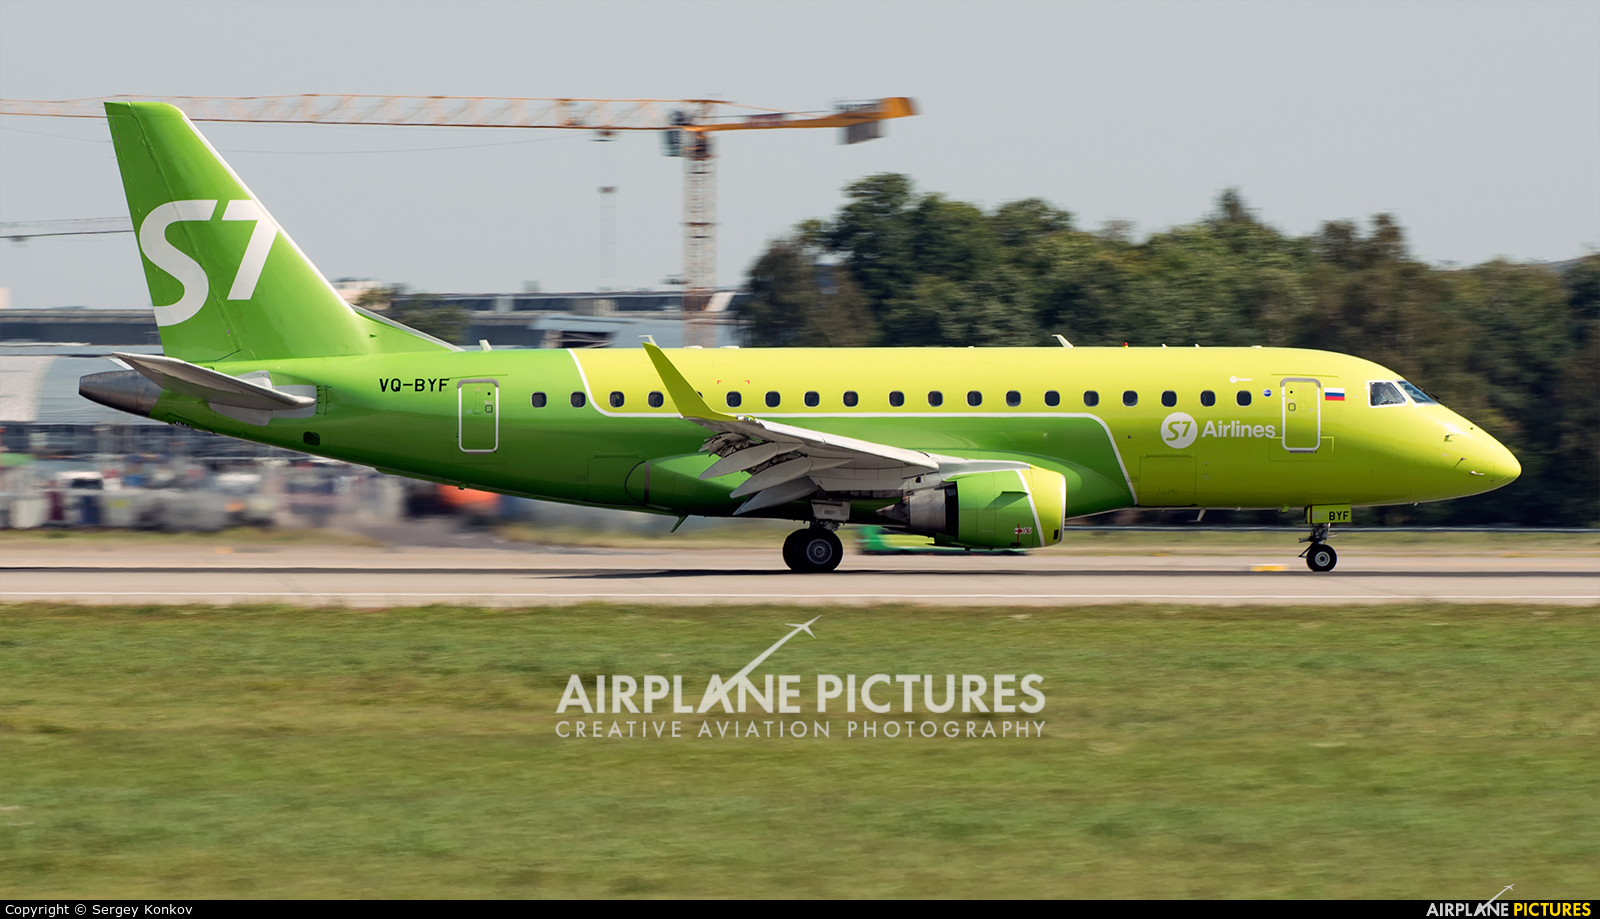 S7 Airlines VQ-BYF aircraft at Moscow - Domodedovo